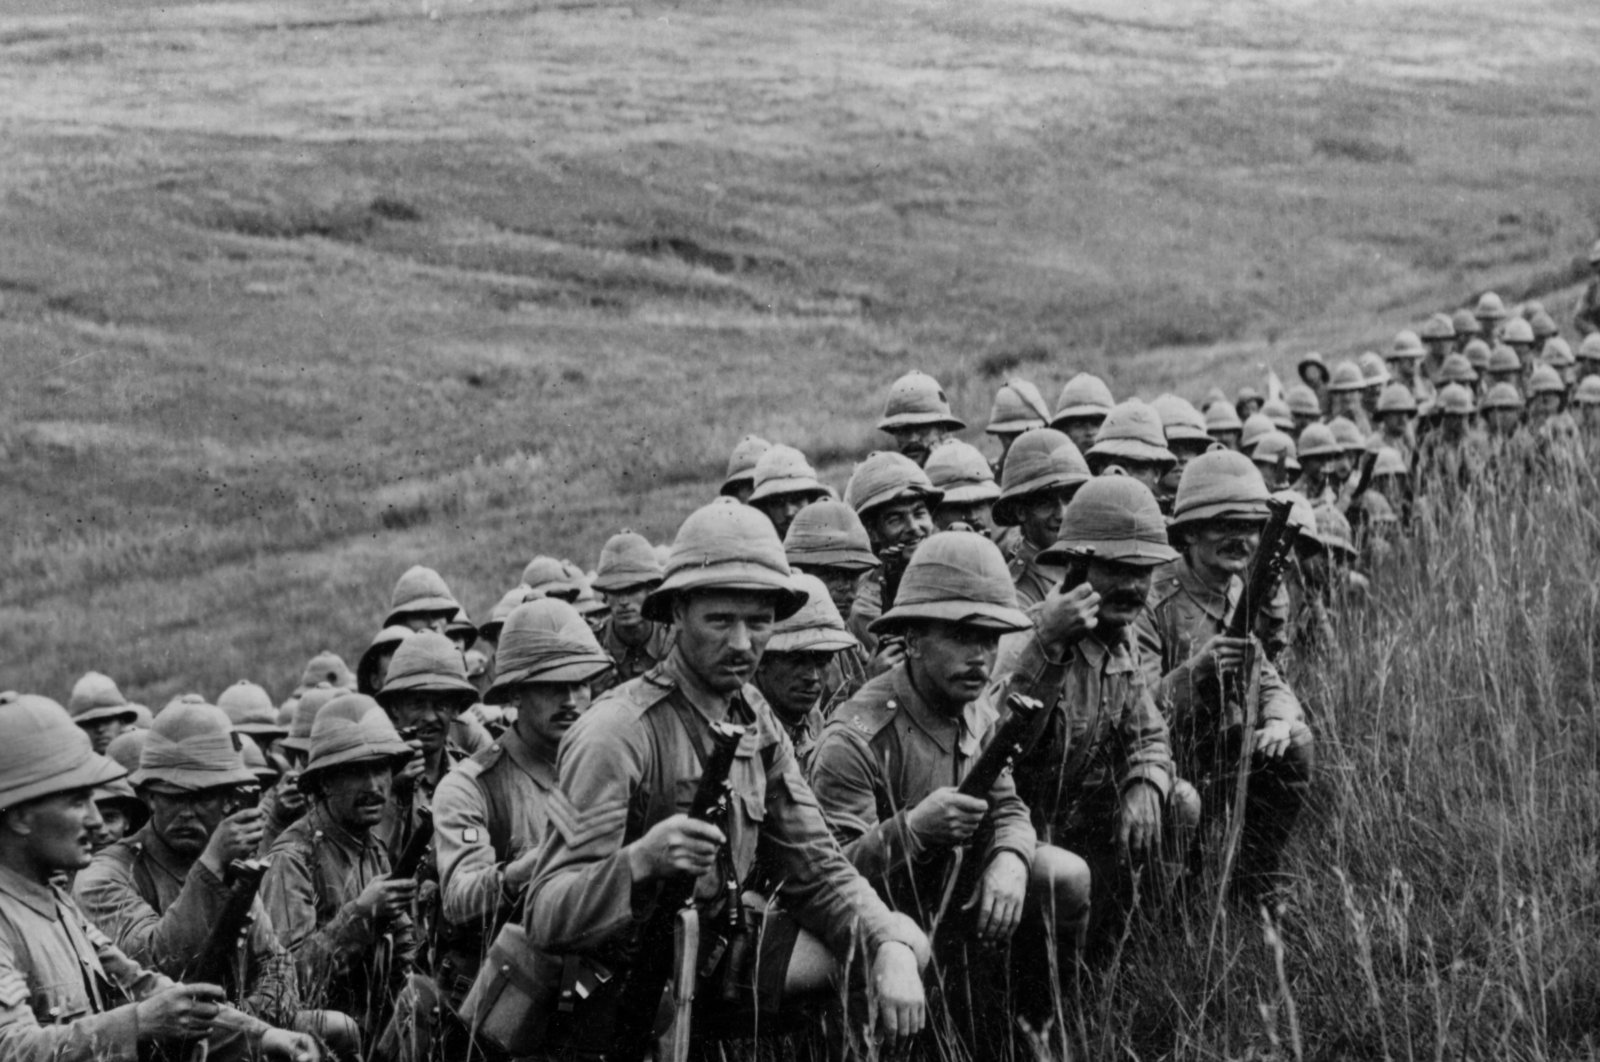 Winston Churchill and obscure aspects of the Gallipoli Campaign